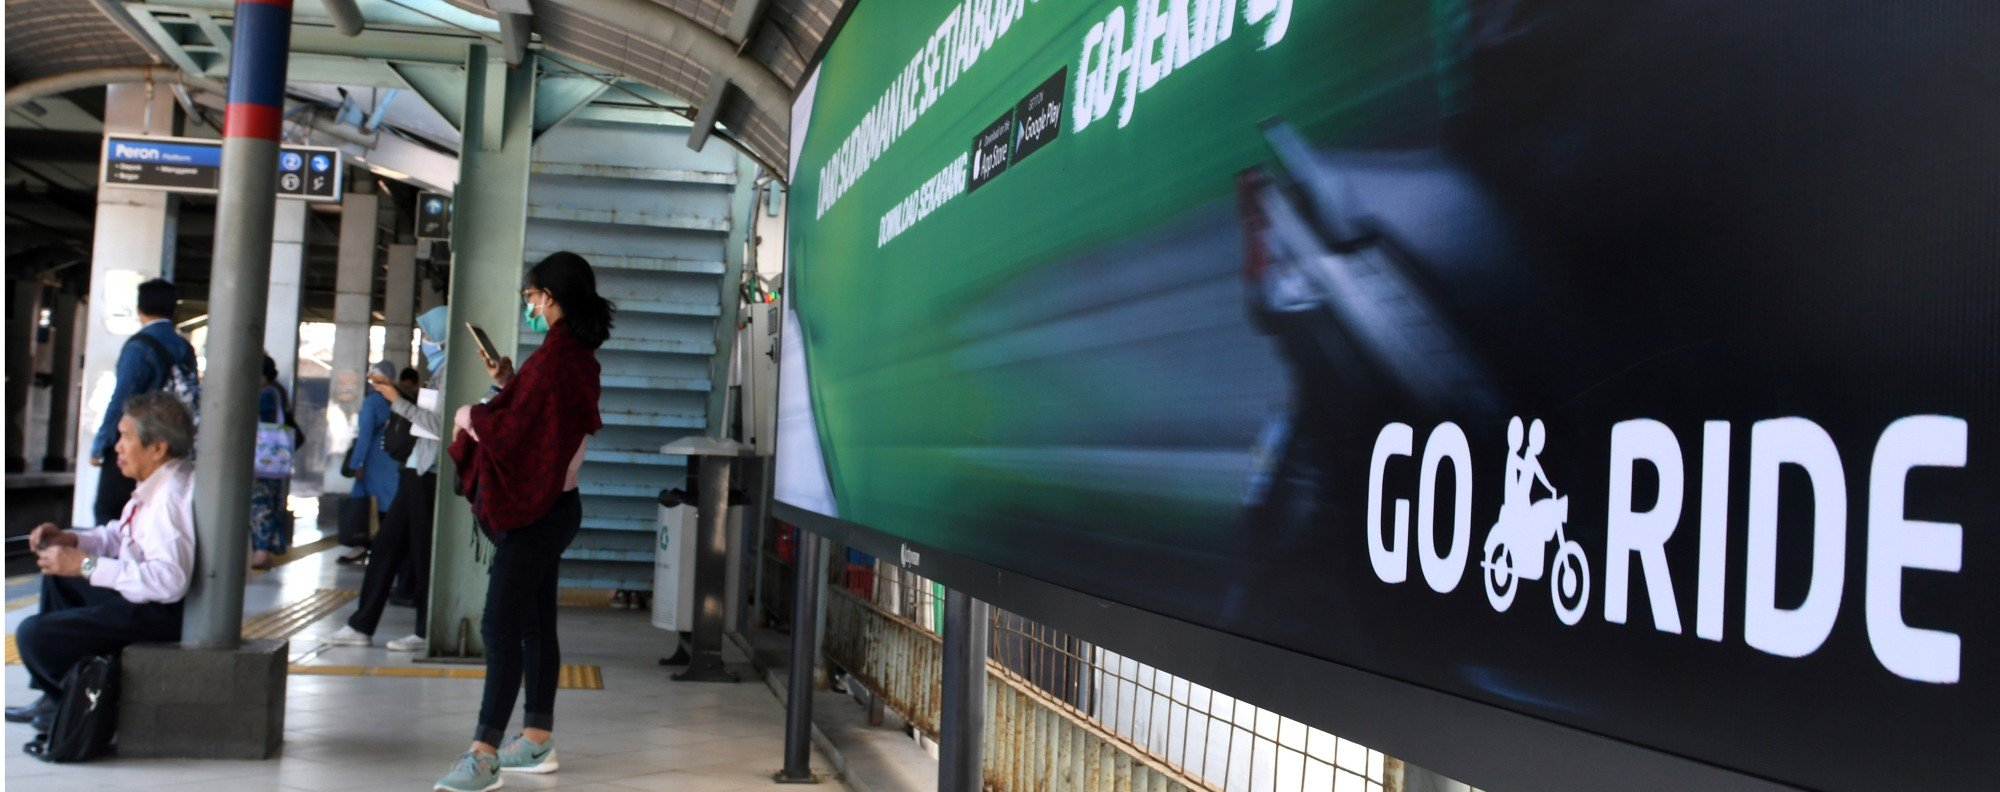 A Go-Jek advertisement at a railway station in Jakarta. Photo: AFP